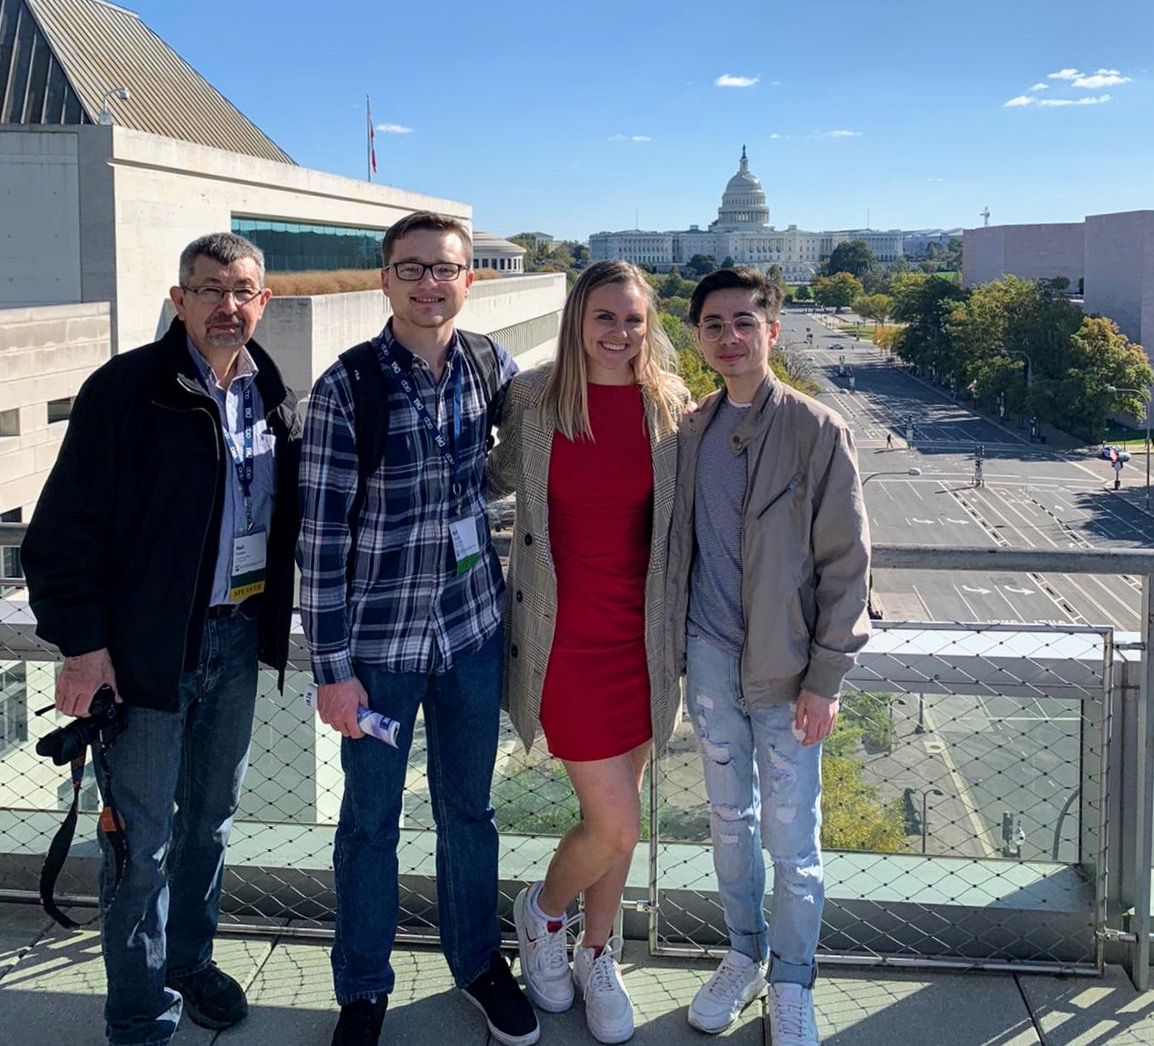 From left, Lindenlink's advisor Neil Ralston poses with Matt Hampton, Kayla Drake and Tyler Keohane in Washington D.C.  Photo from Kayla Drake.